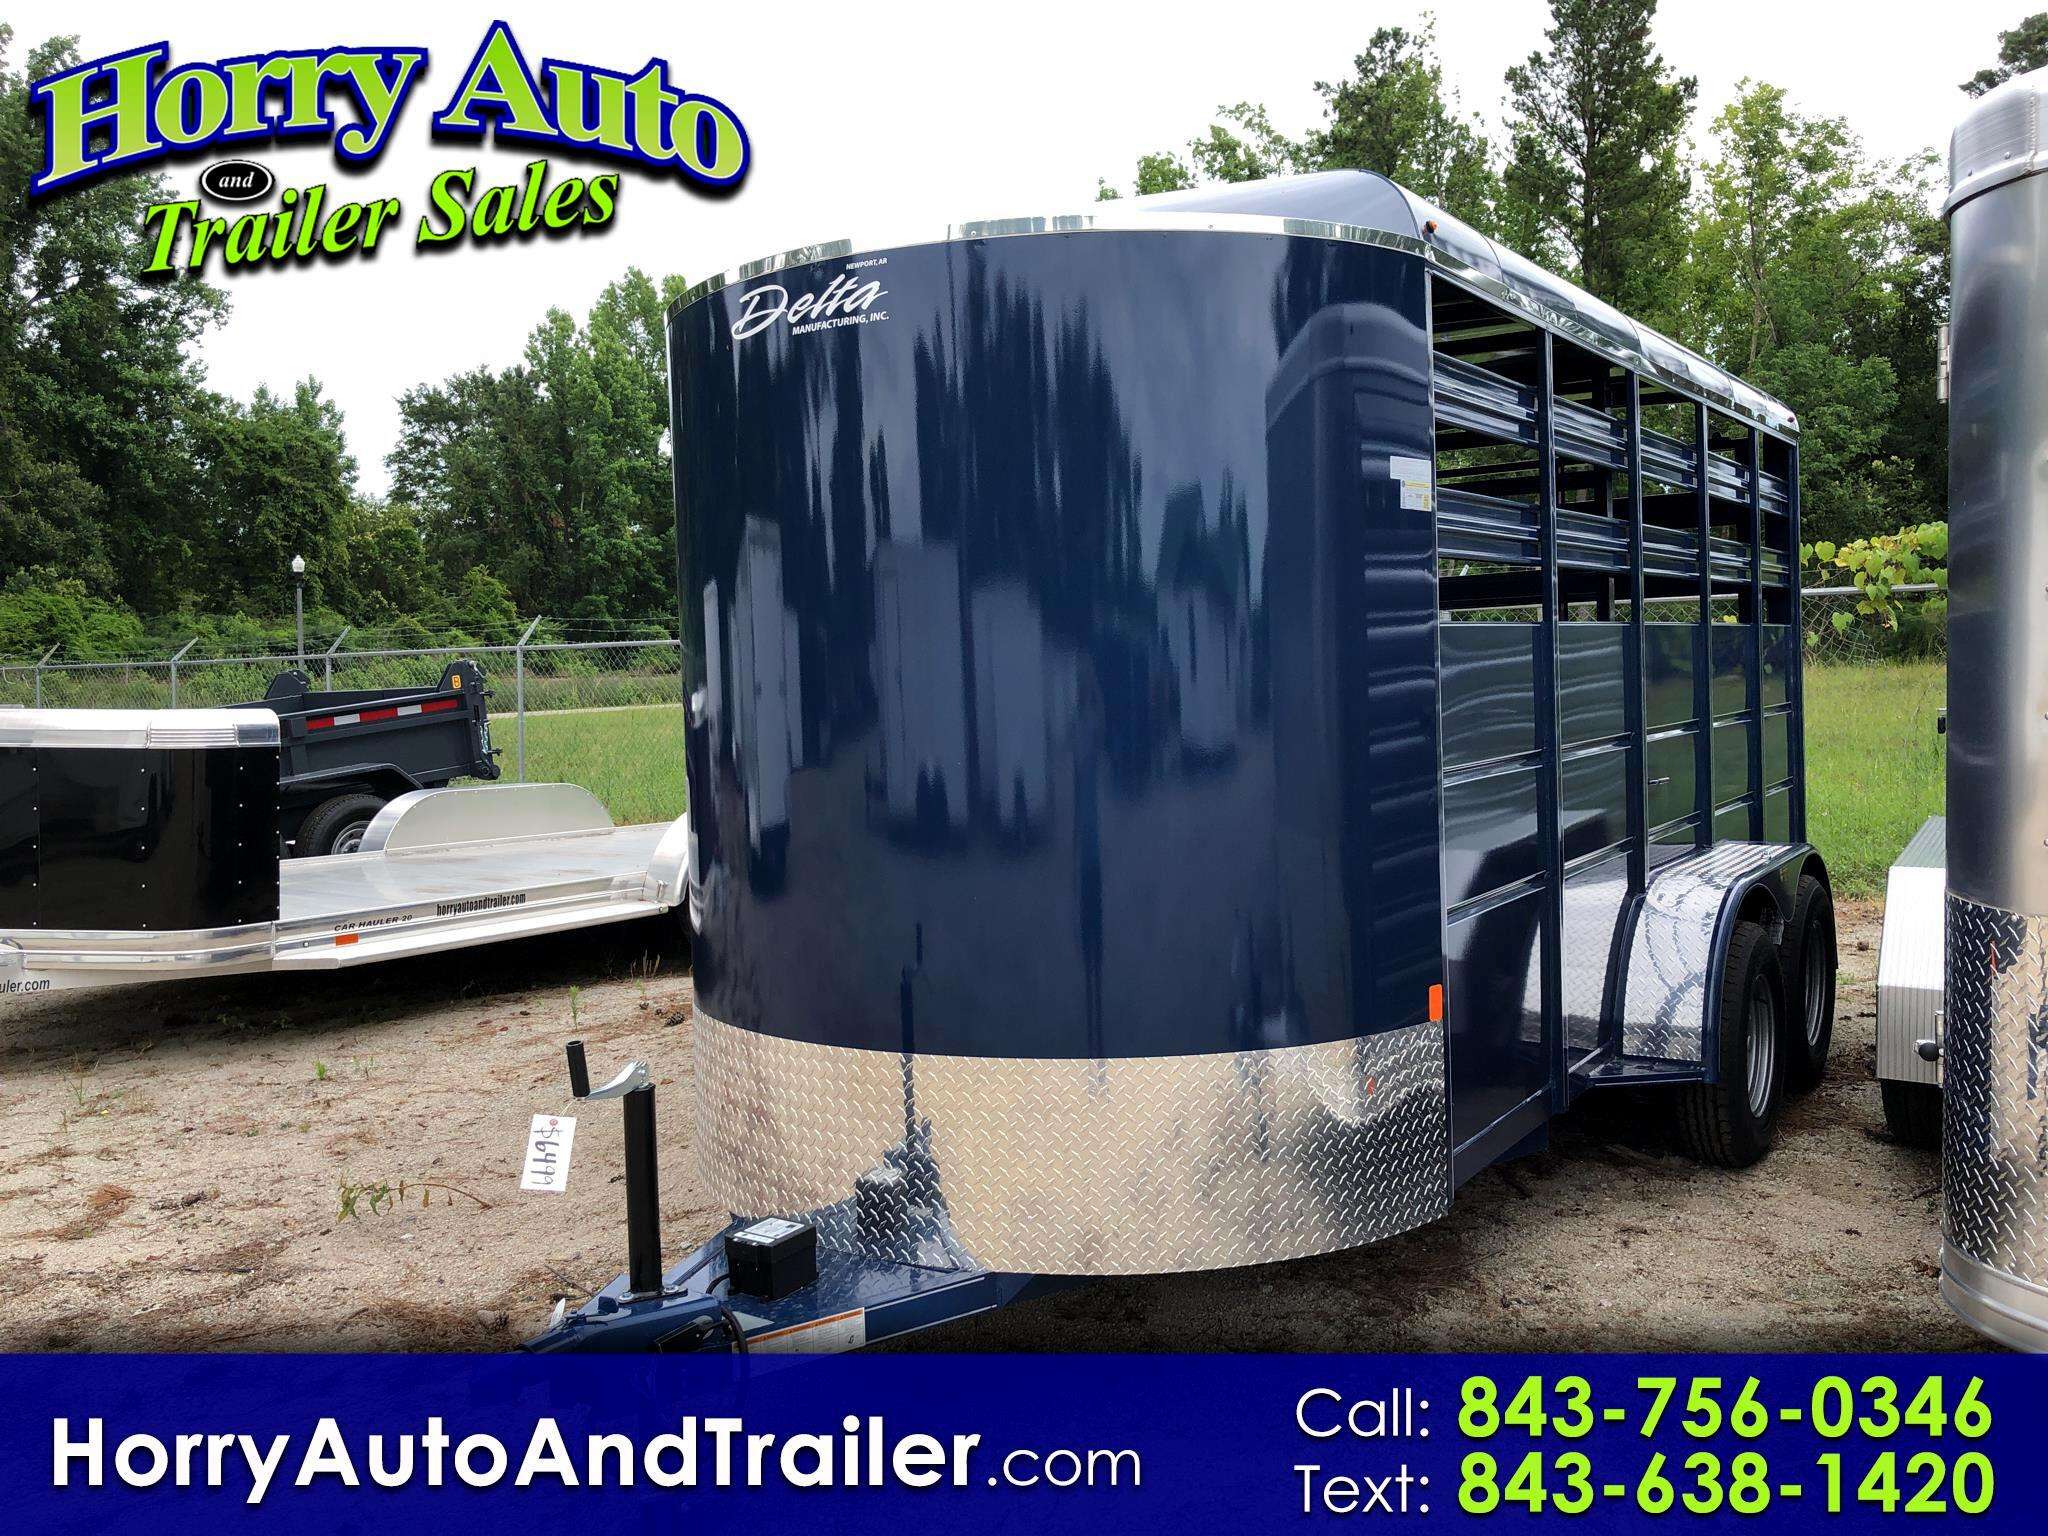 2019 Delta 500 ES bumper pull horse trailer 7 ft high